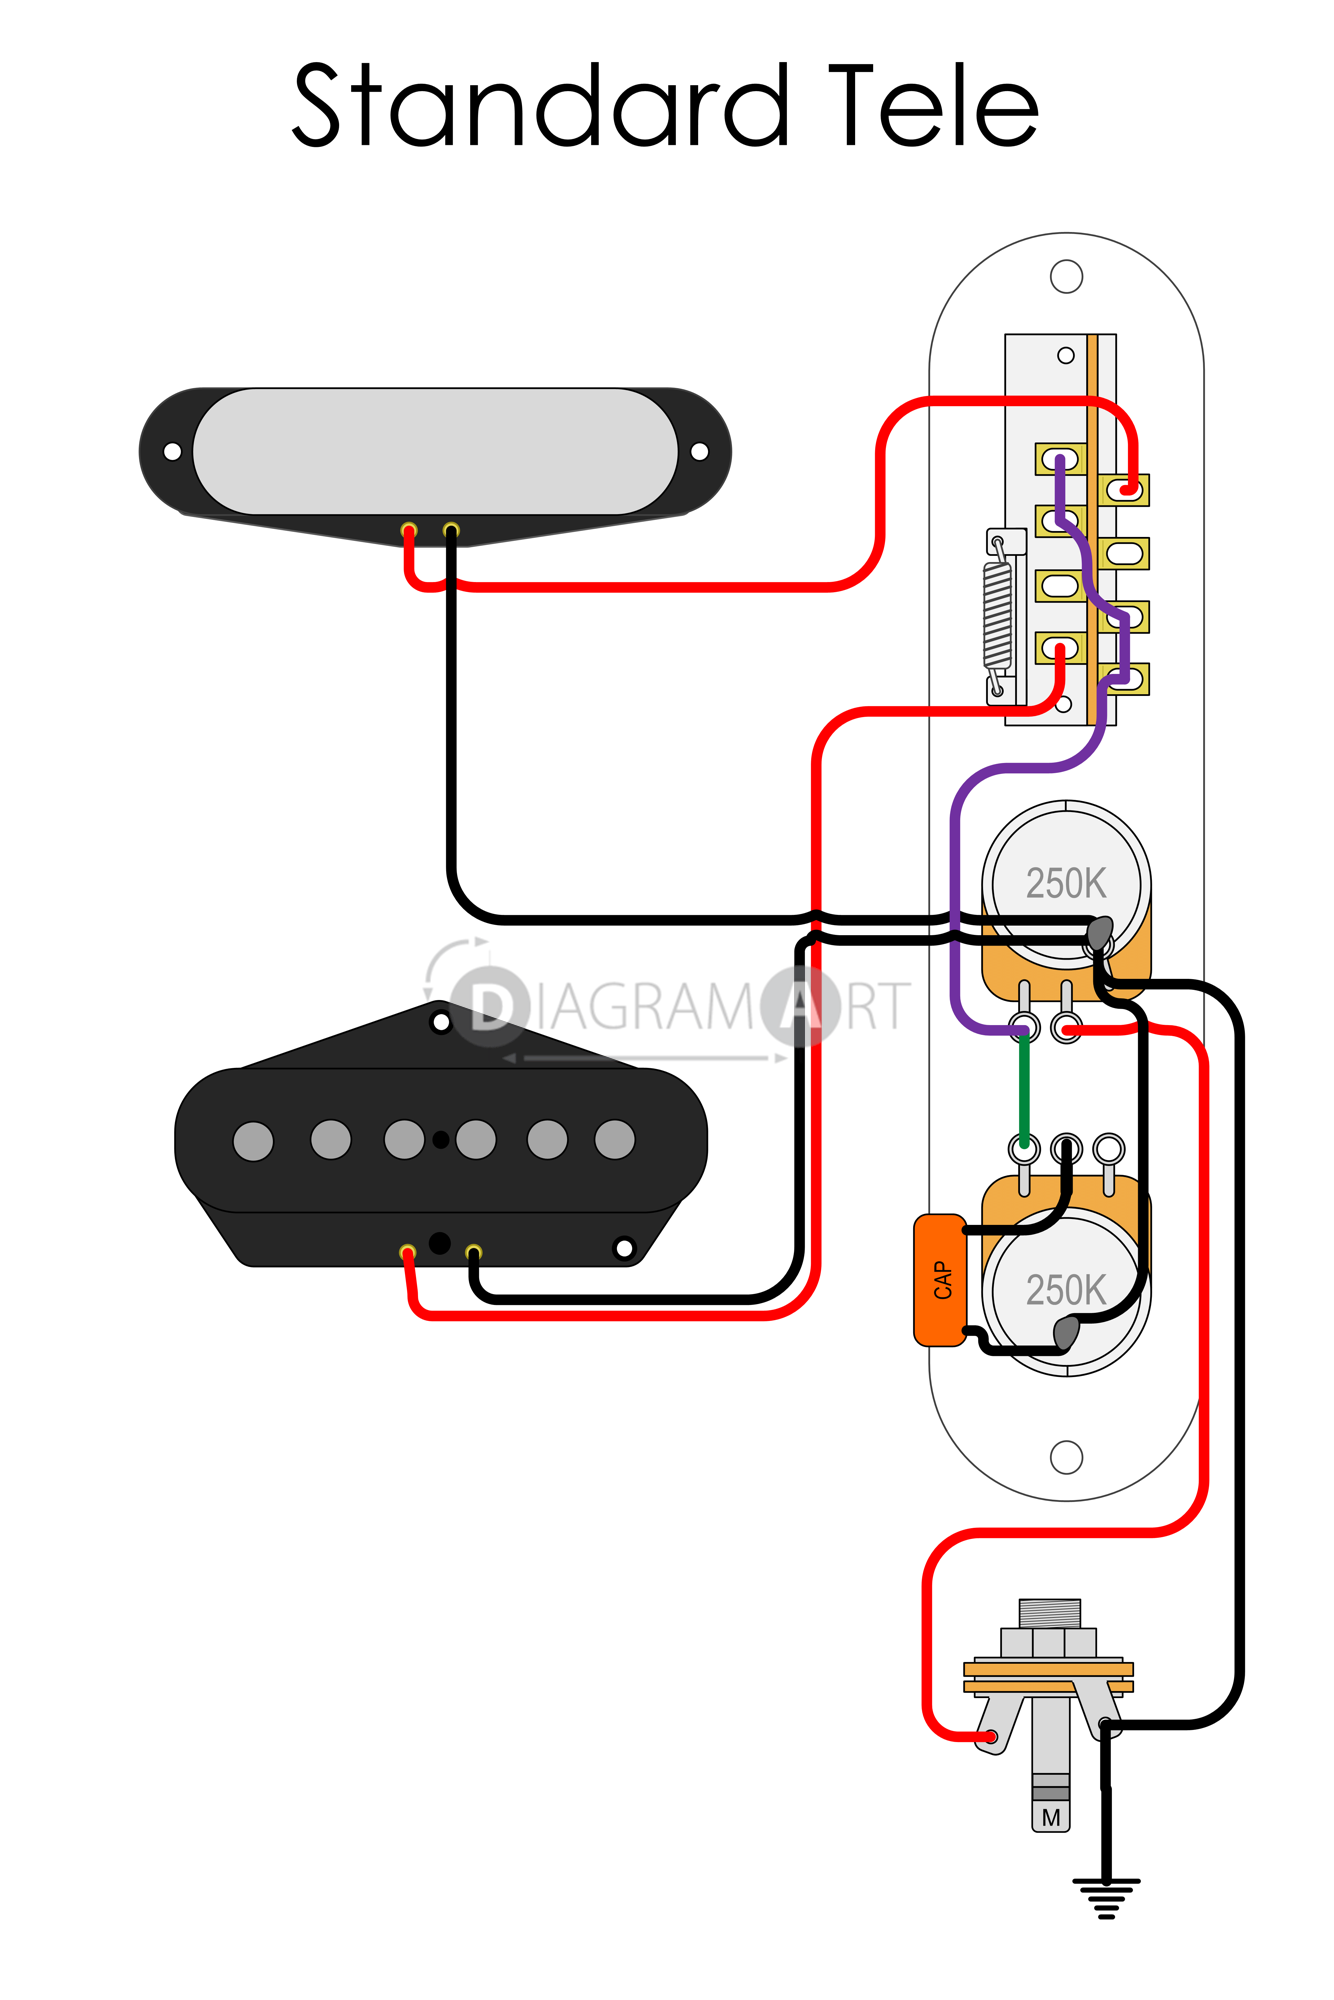 Telecaster Wiring Schematic For Modern Standard Diagram Electrical Largest Electric Guitar Tele Circuit Diagramart Rh Com Basic